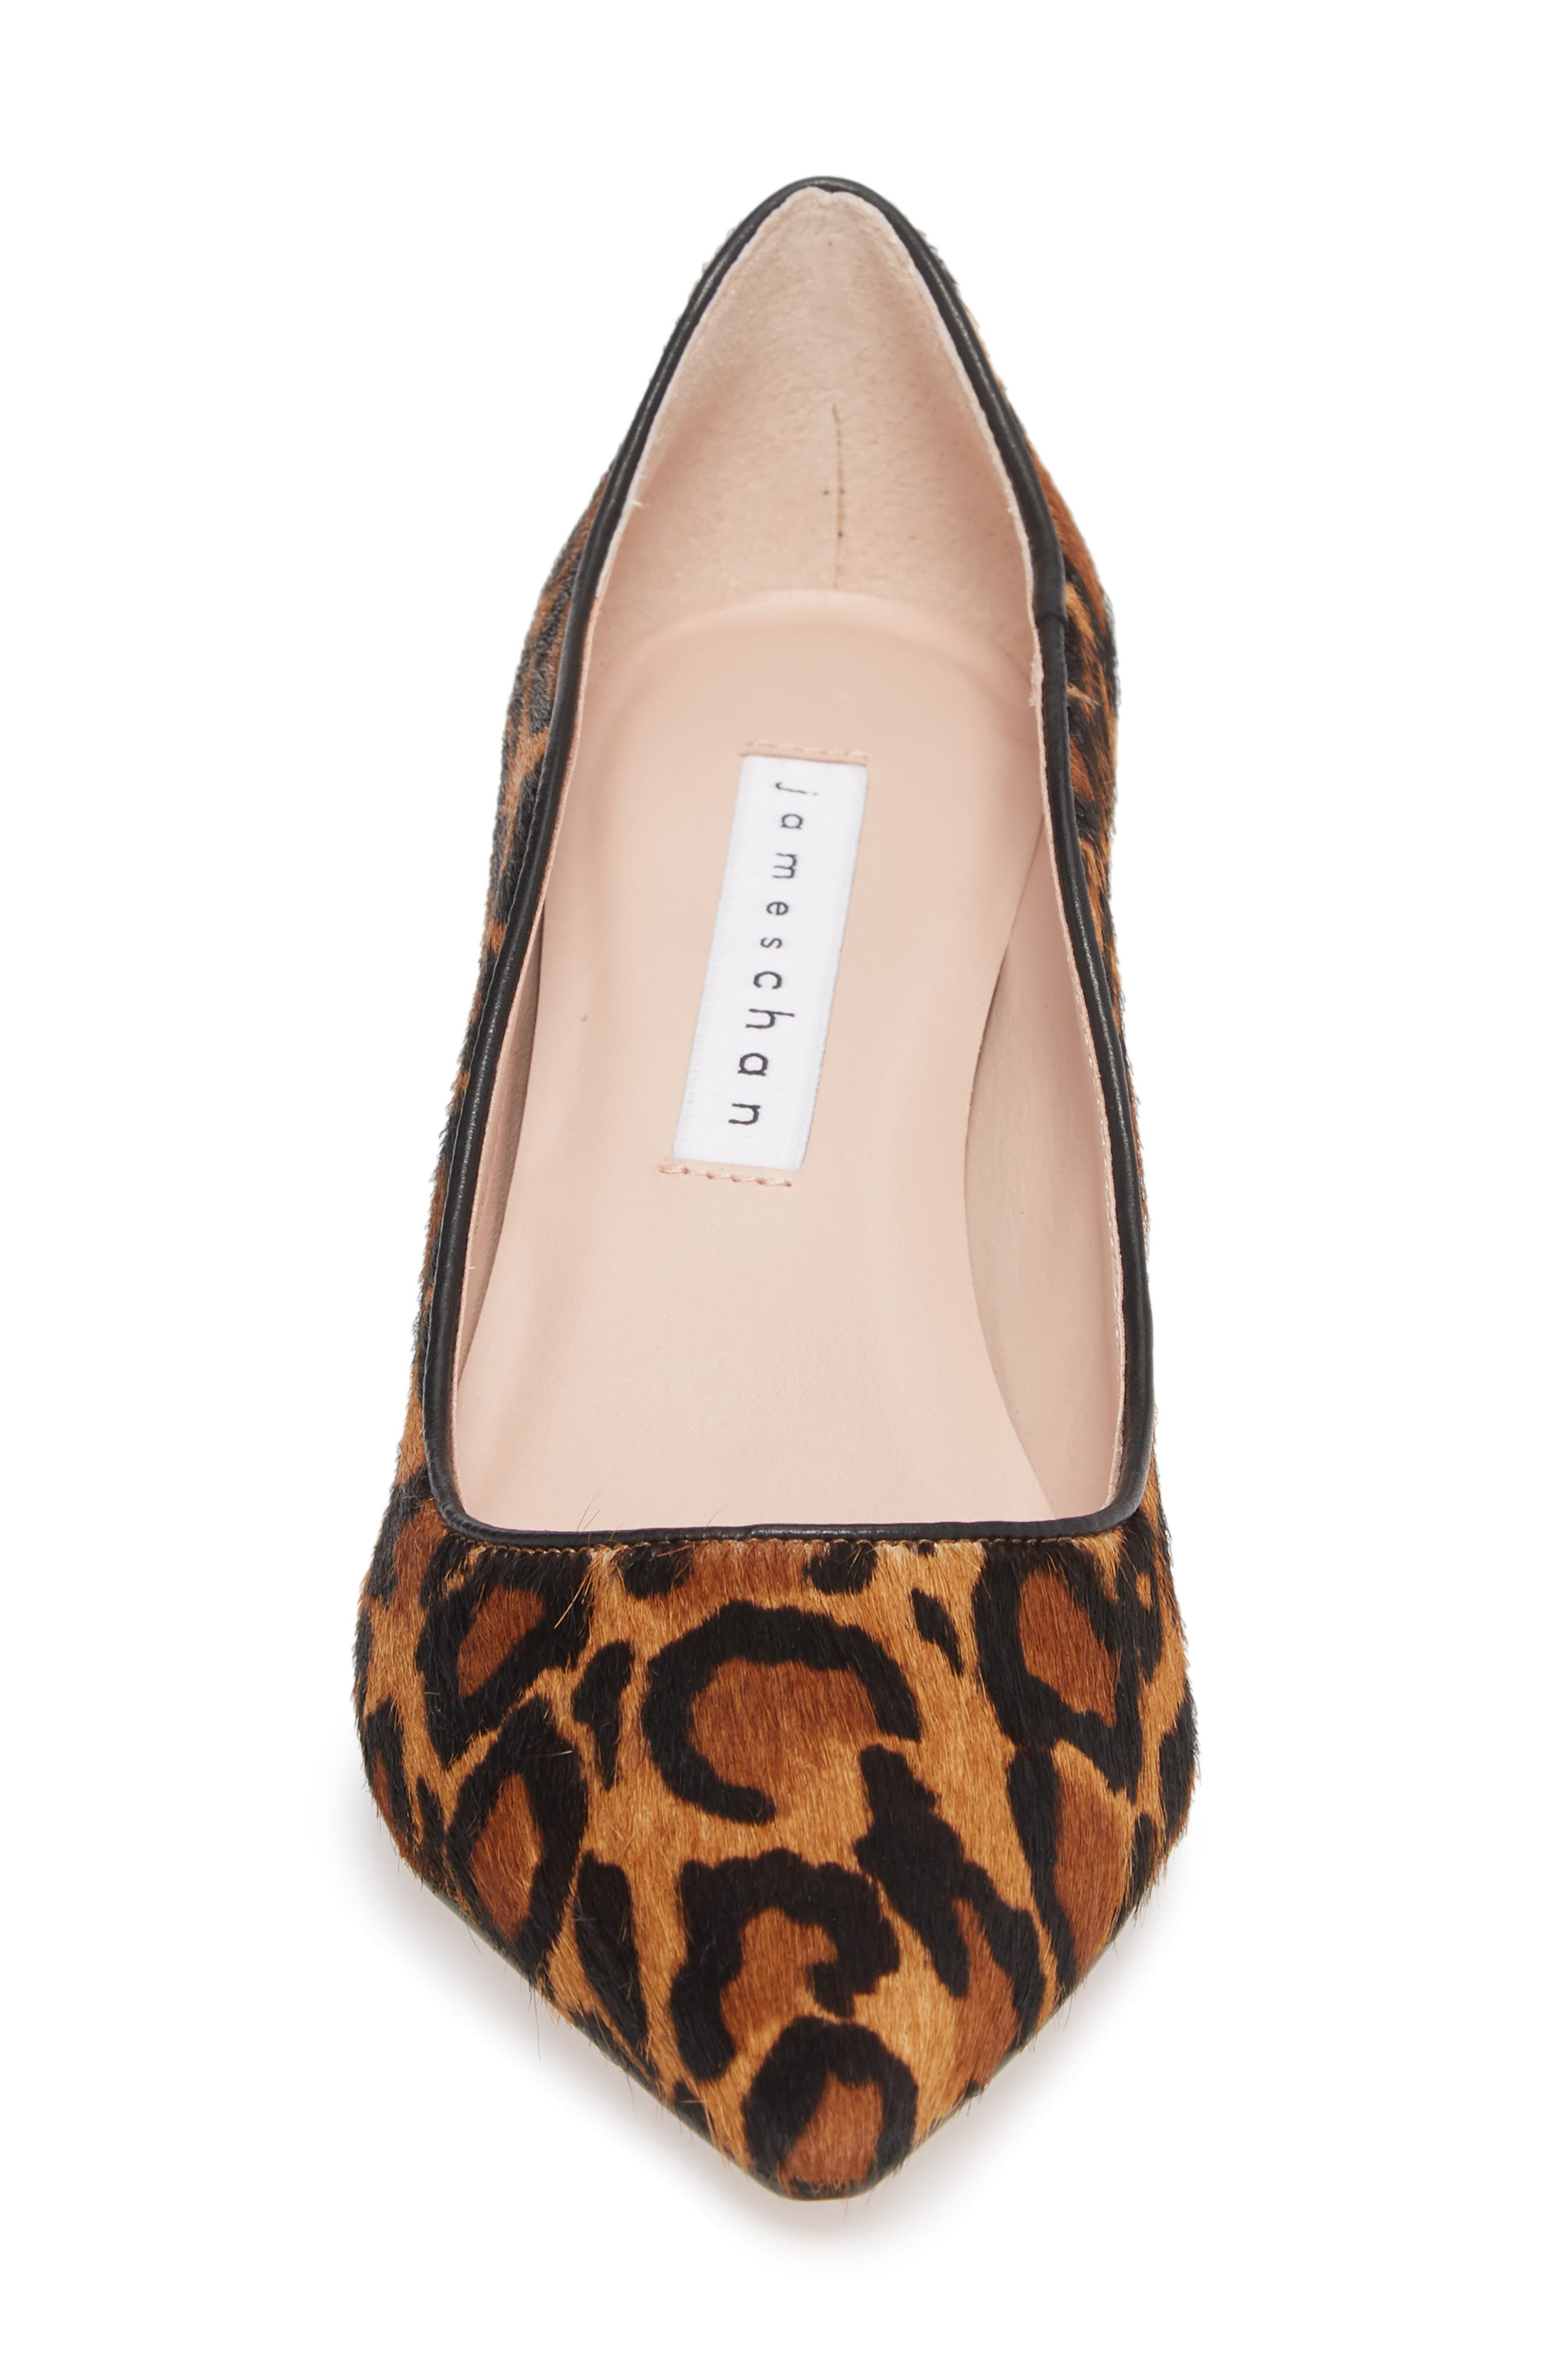 Anika 70 Pump,                             Alternate thumbnail 4, color,                             CAMEL MULTI HAIR CALF